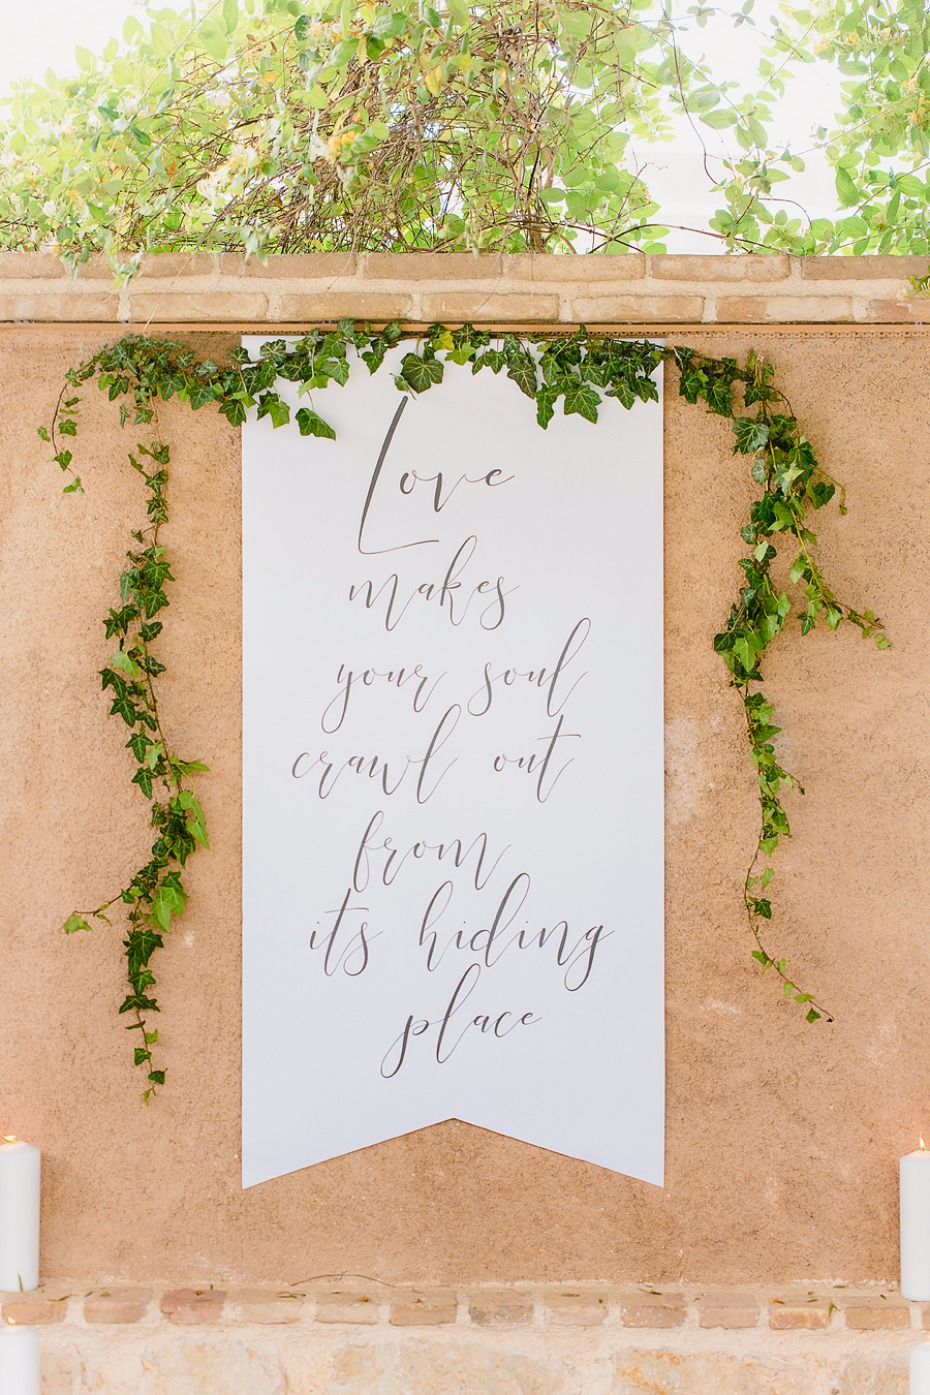 Gorgeous ceremony backdrop idea